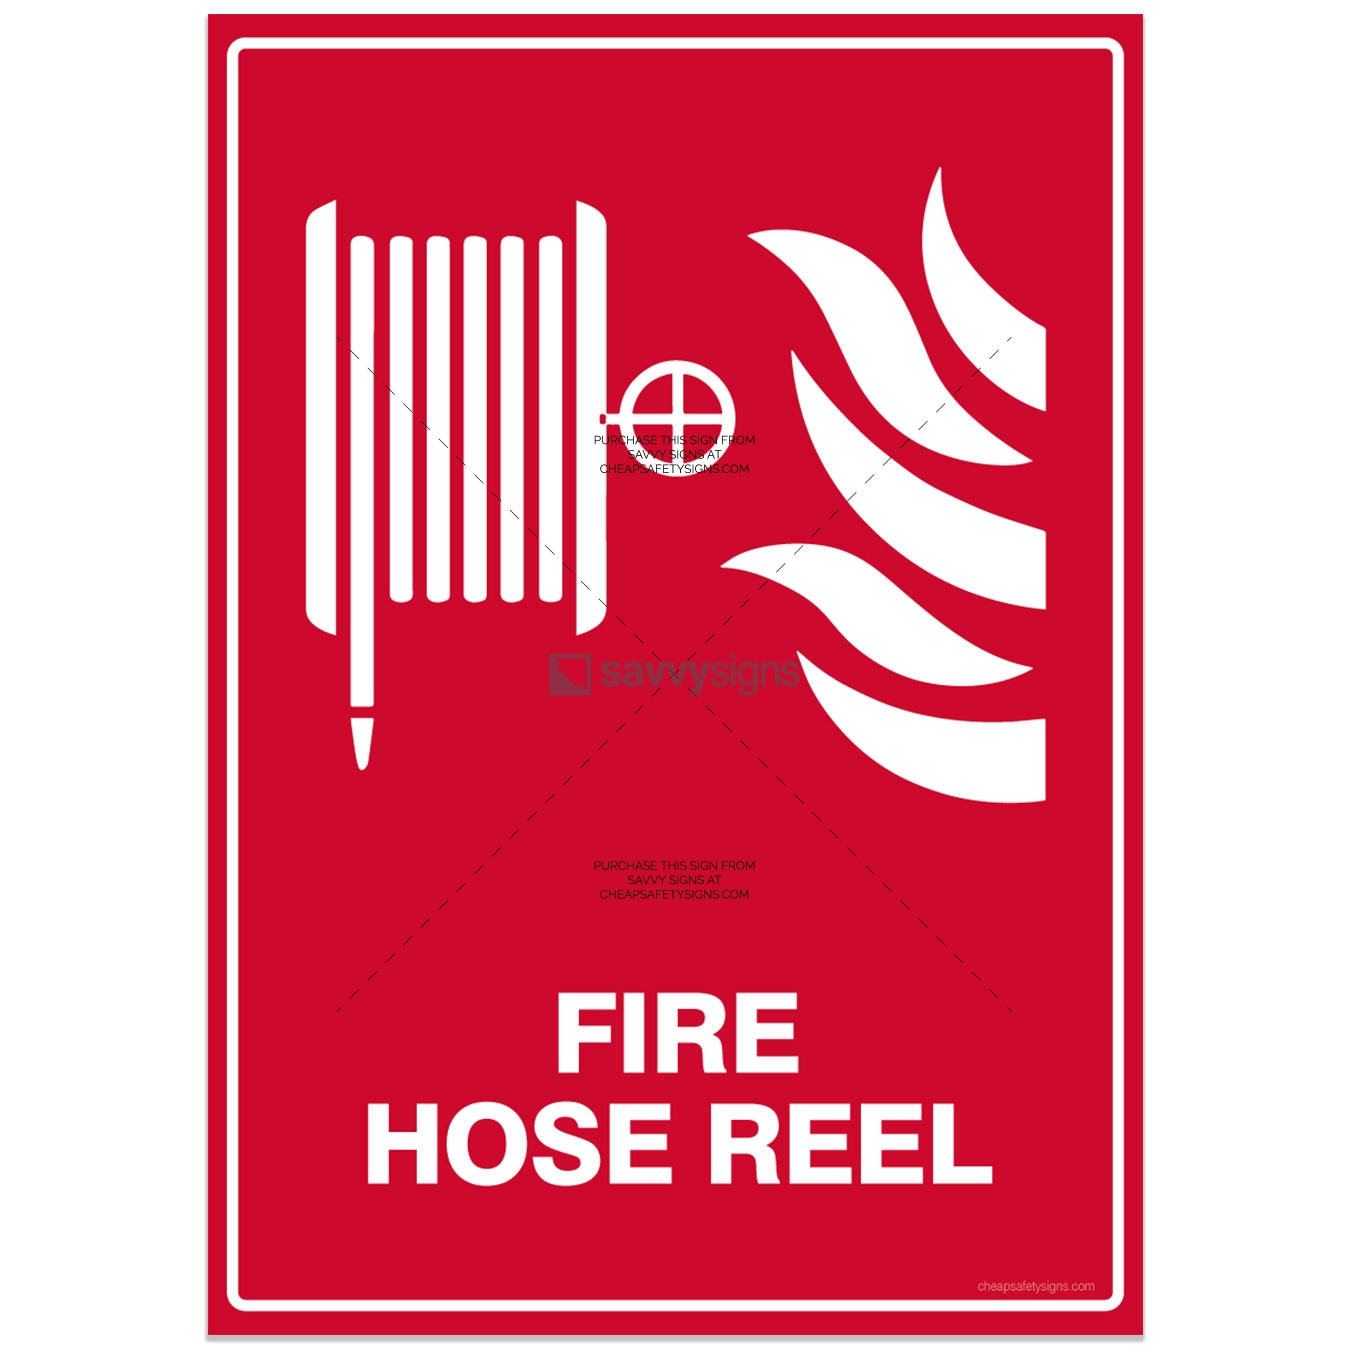 SSFIR3029-FIRE-SAFETY-Workplace-Safety-Signs_Savvy-Signs_v3